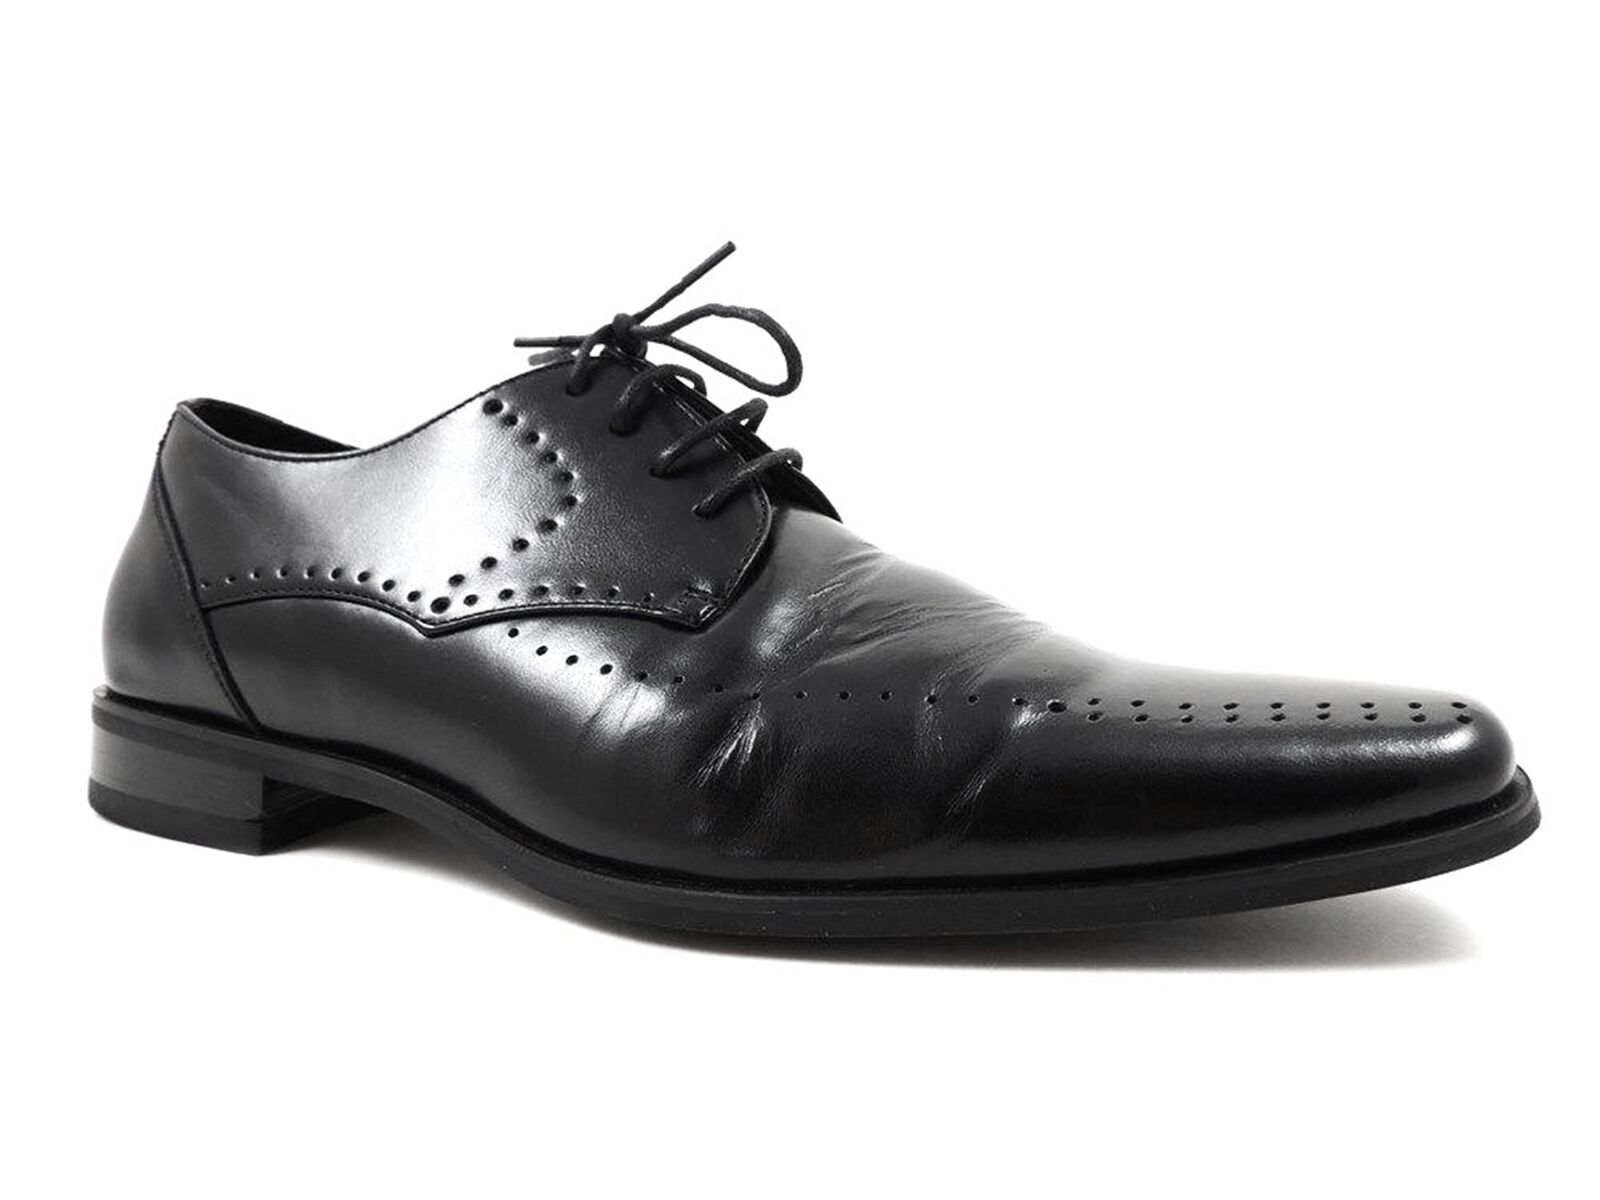 Stacy Adams Men's Black Shoes, ATWELL Perforated Oxfords Black Men's Leather 11 M MSRP $85 a2ce17